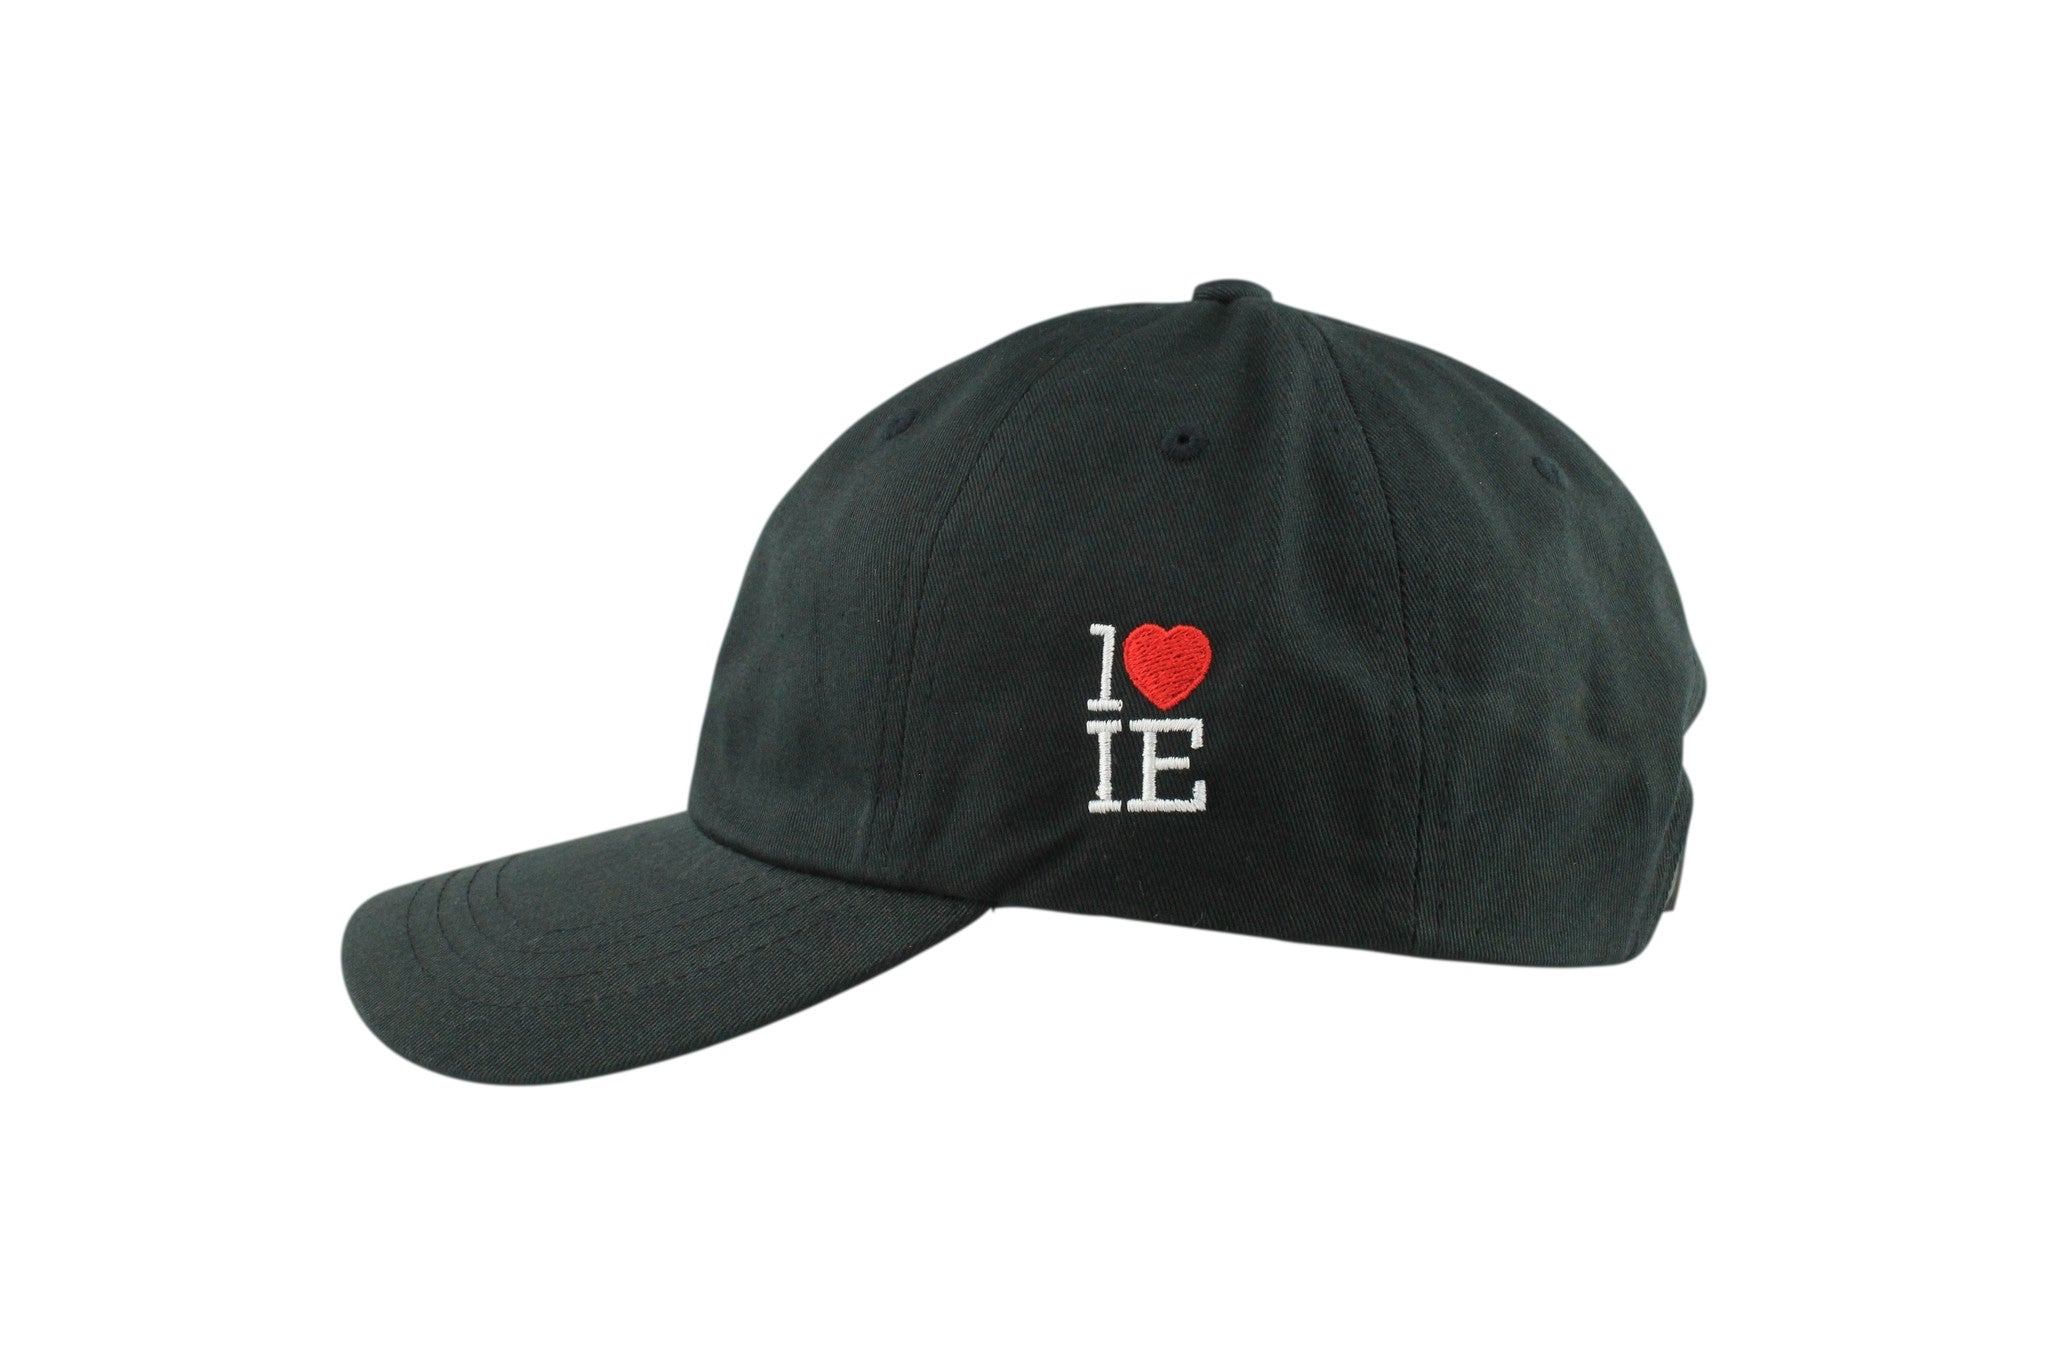 Mini Rose Dad Hat – 1LoveIE 5c40730e61a